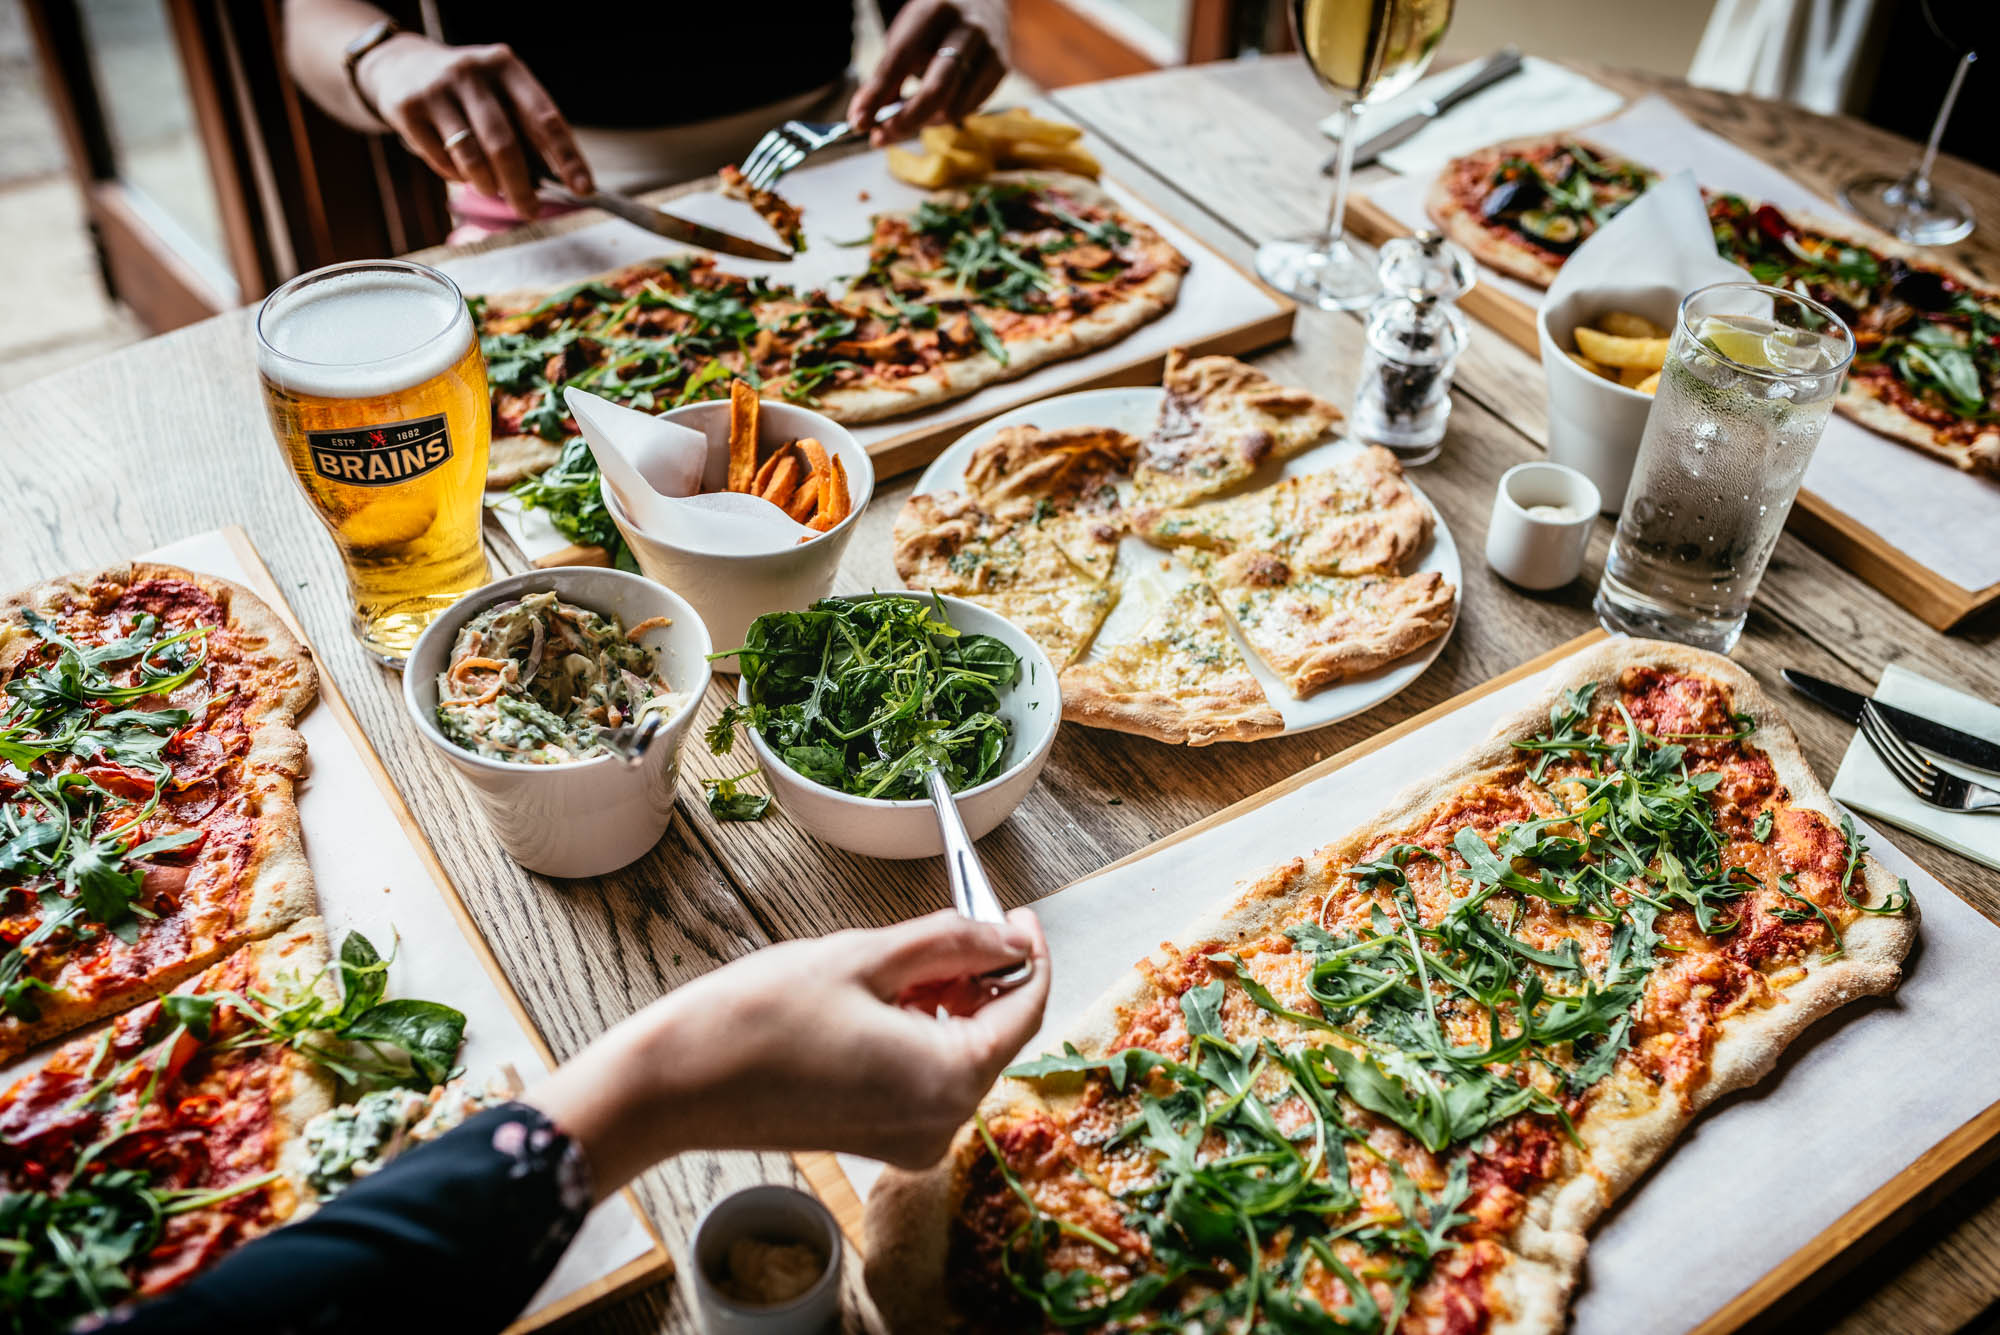 A photo of a table of food in a pub with four people sharing pizza, coleslaw, garlic bread and with drinks of beer, wine and sparkling water